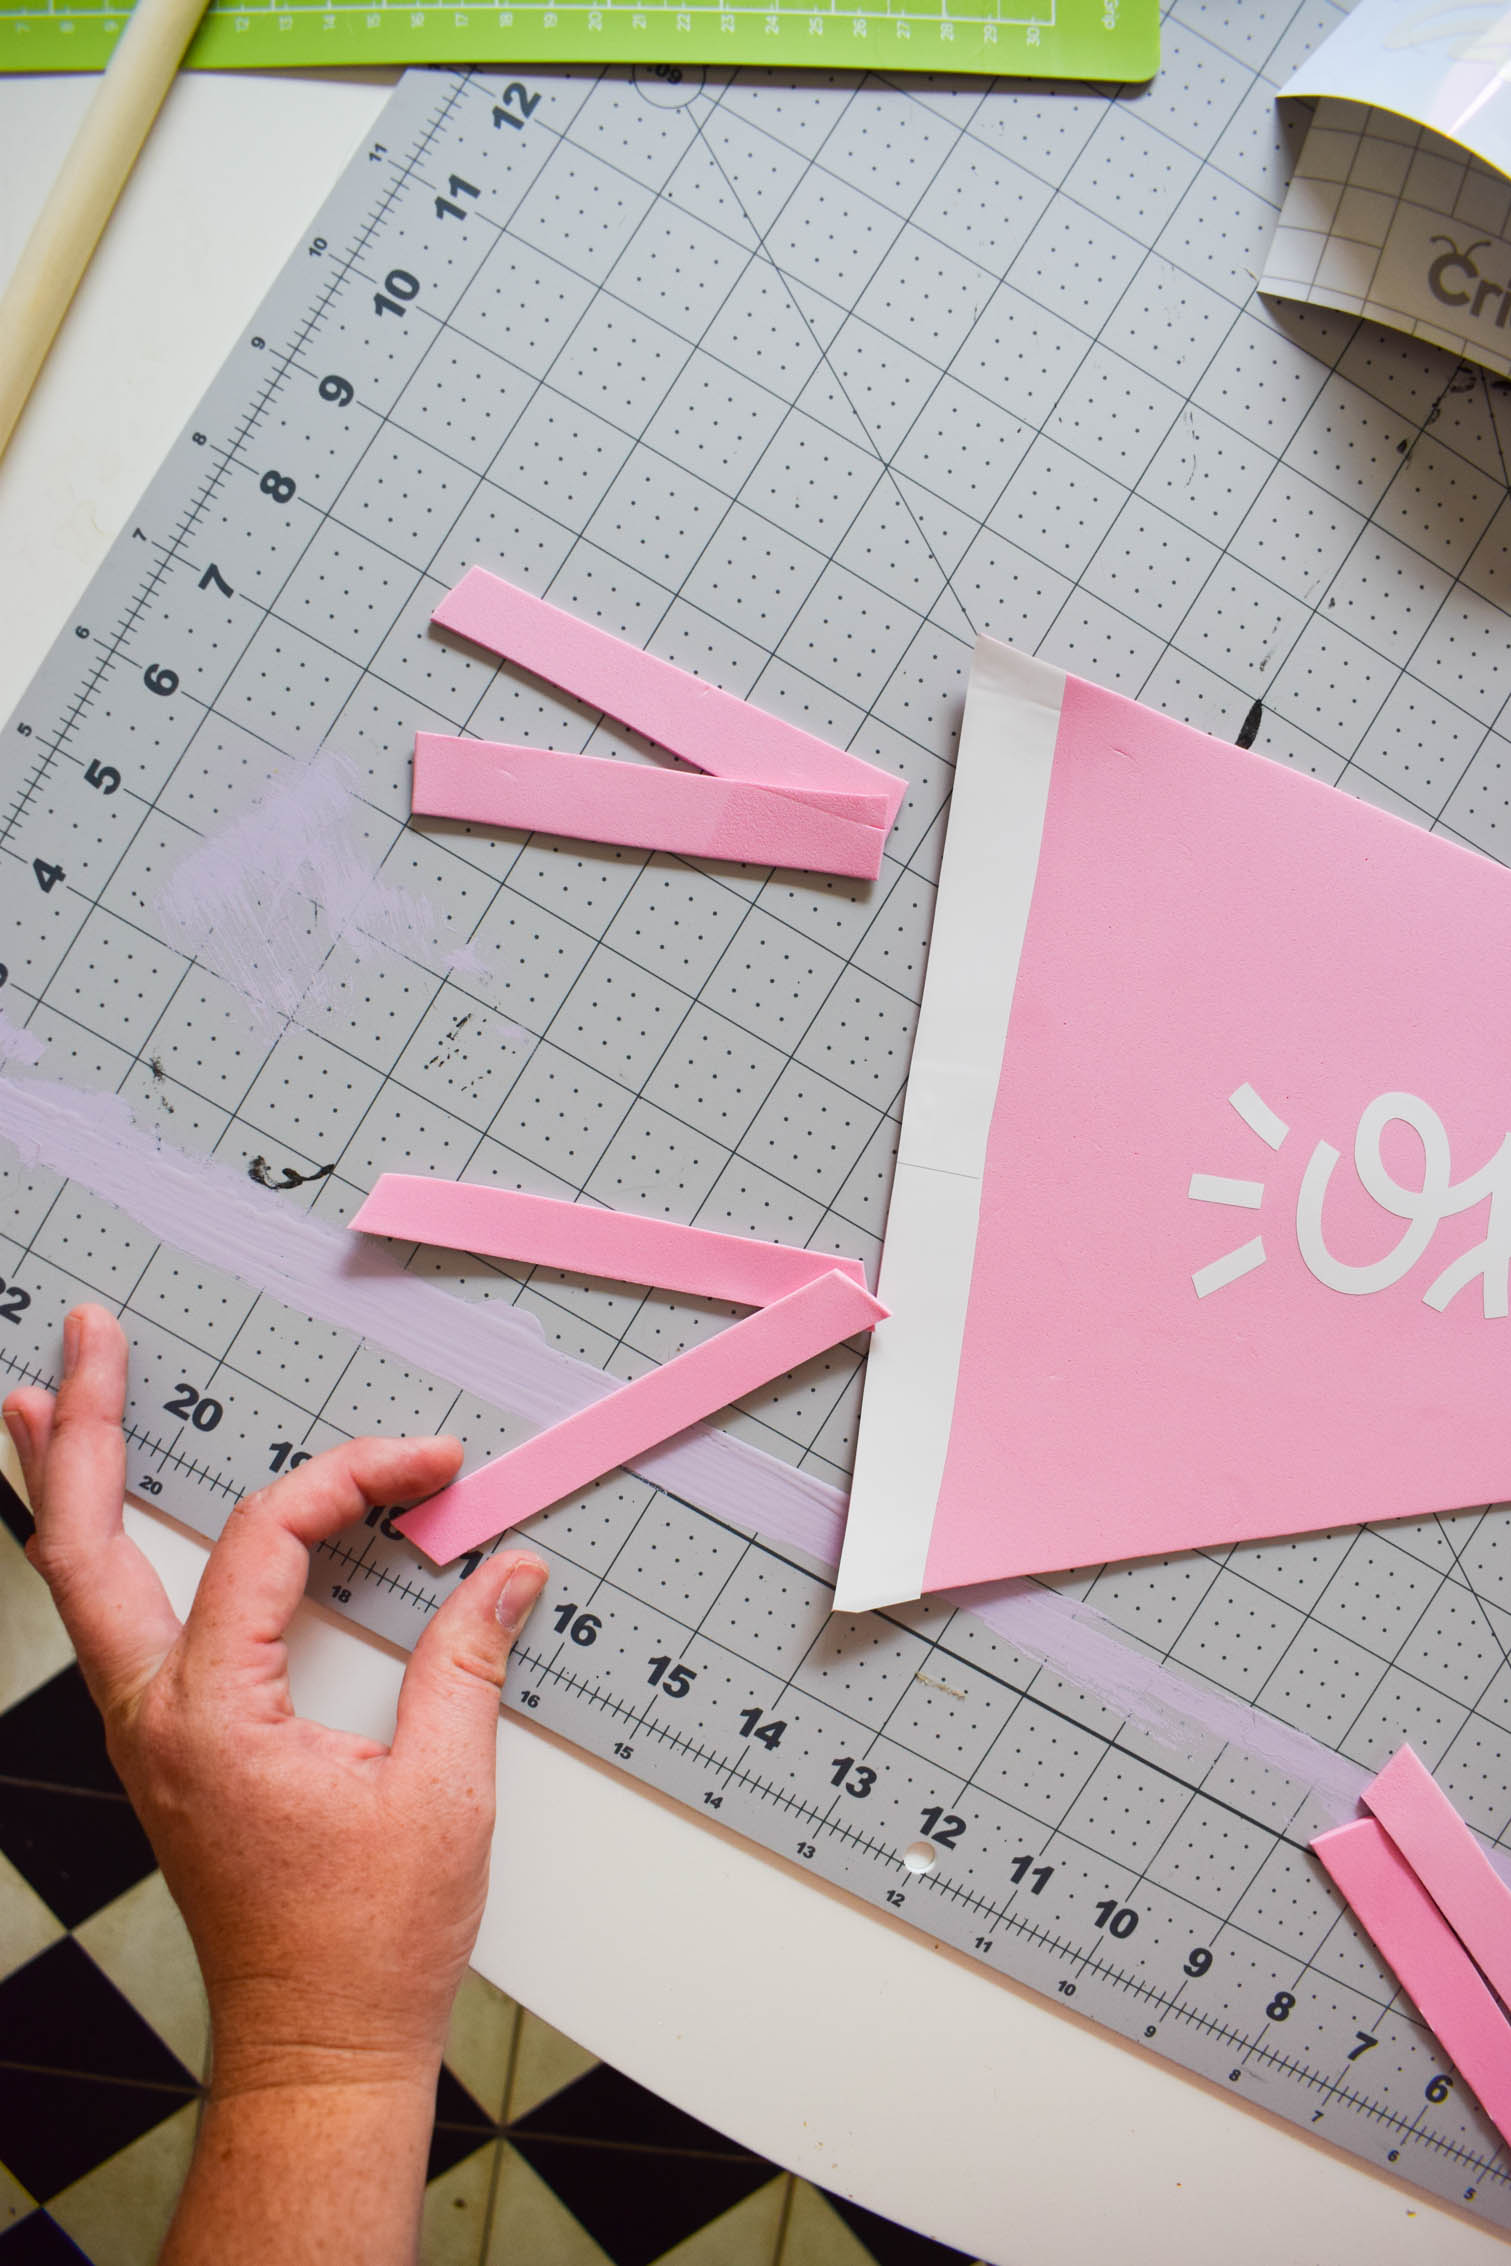 Create a DIY Playhouse Flag that'll survive the elements, using foam and your Cricut Joy! Come catch the tutorial and some inspiration images.